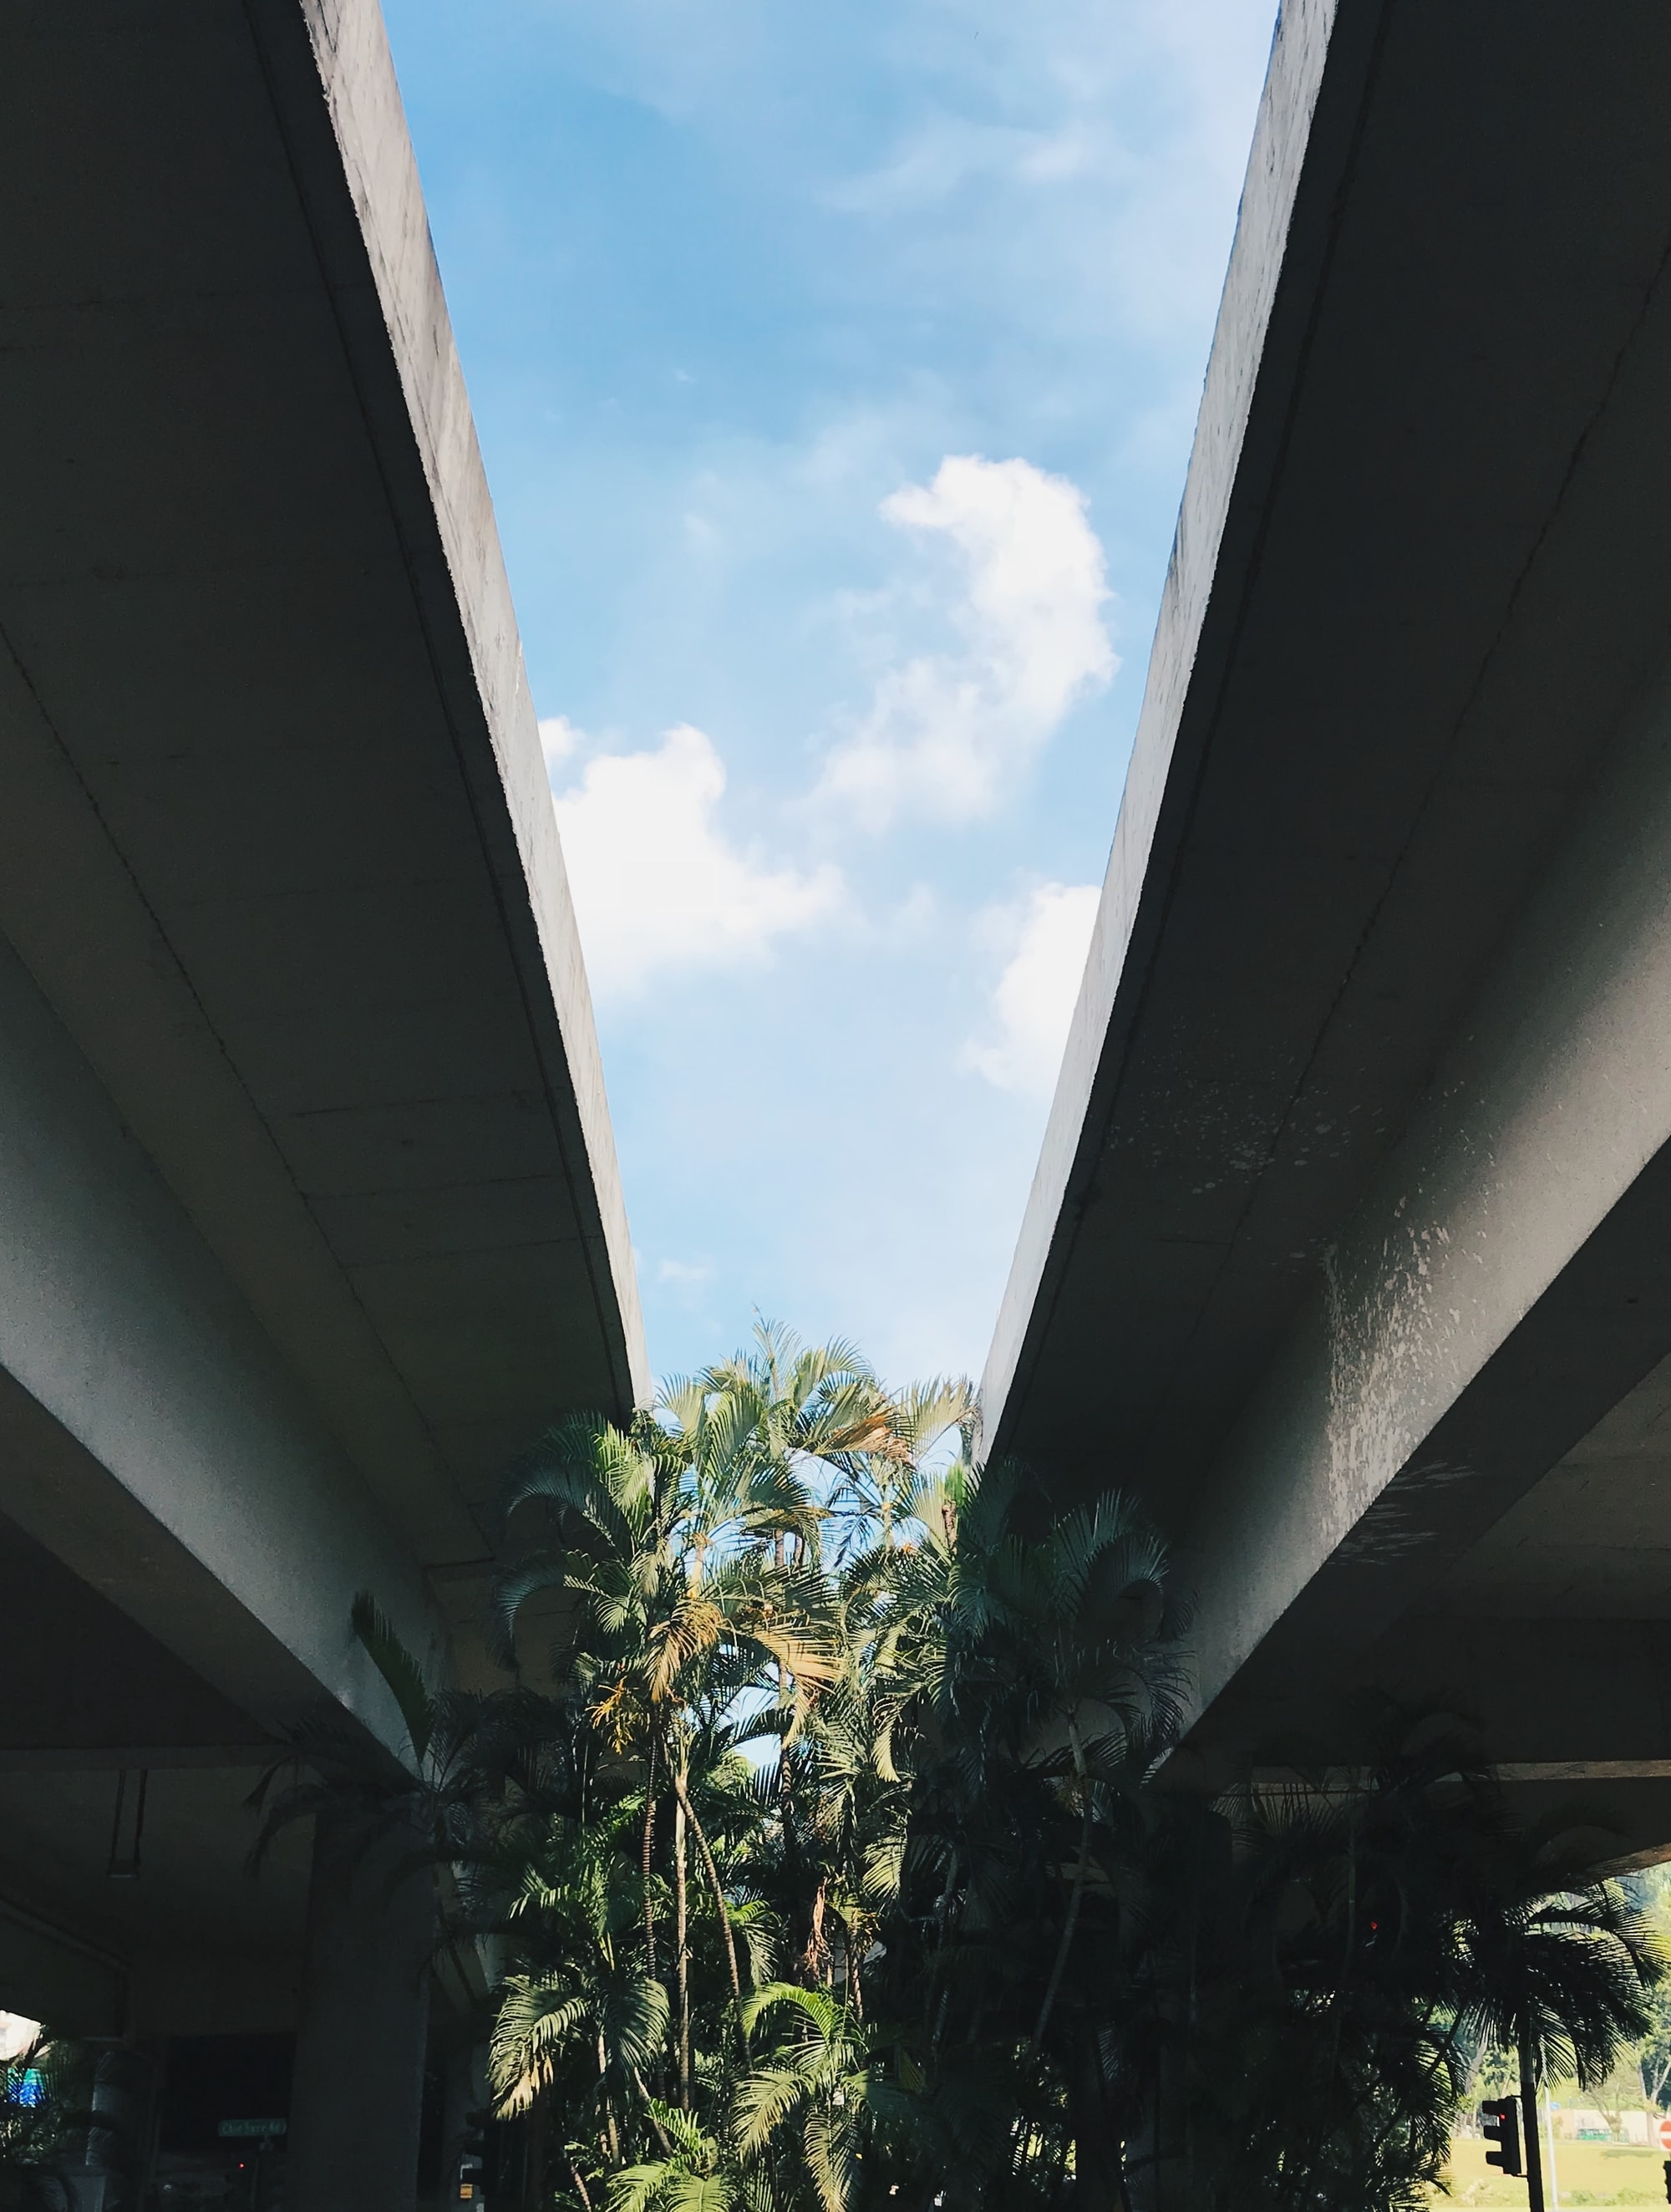 Between a highway flyover in Singapore